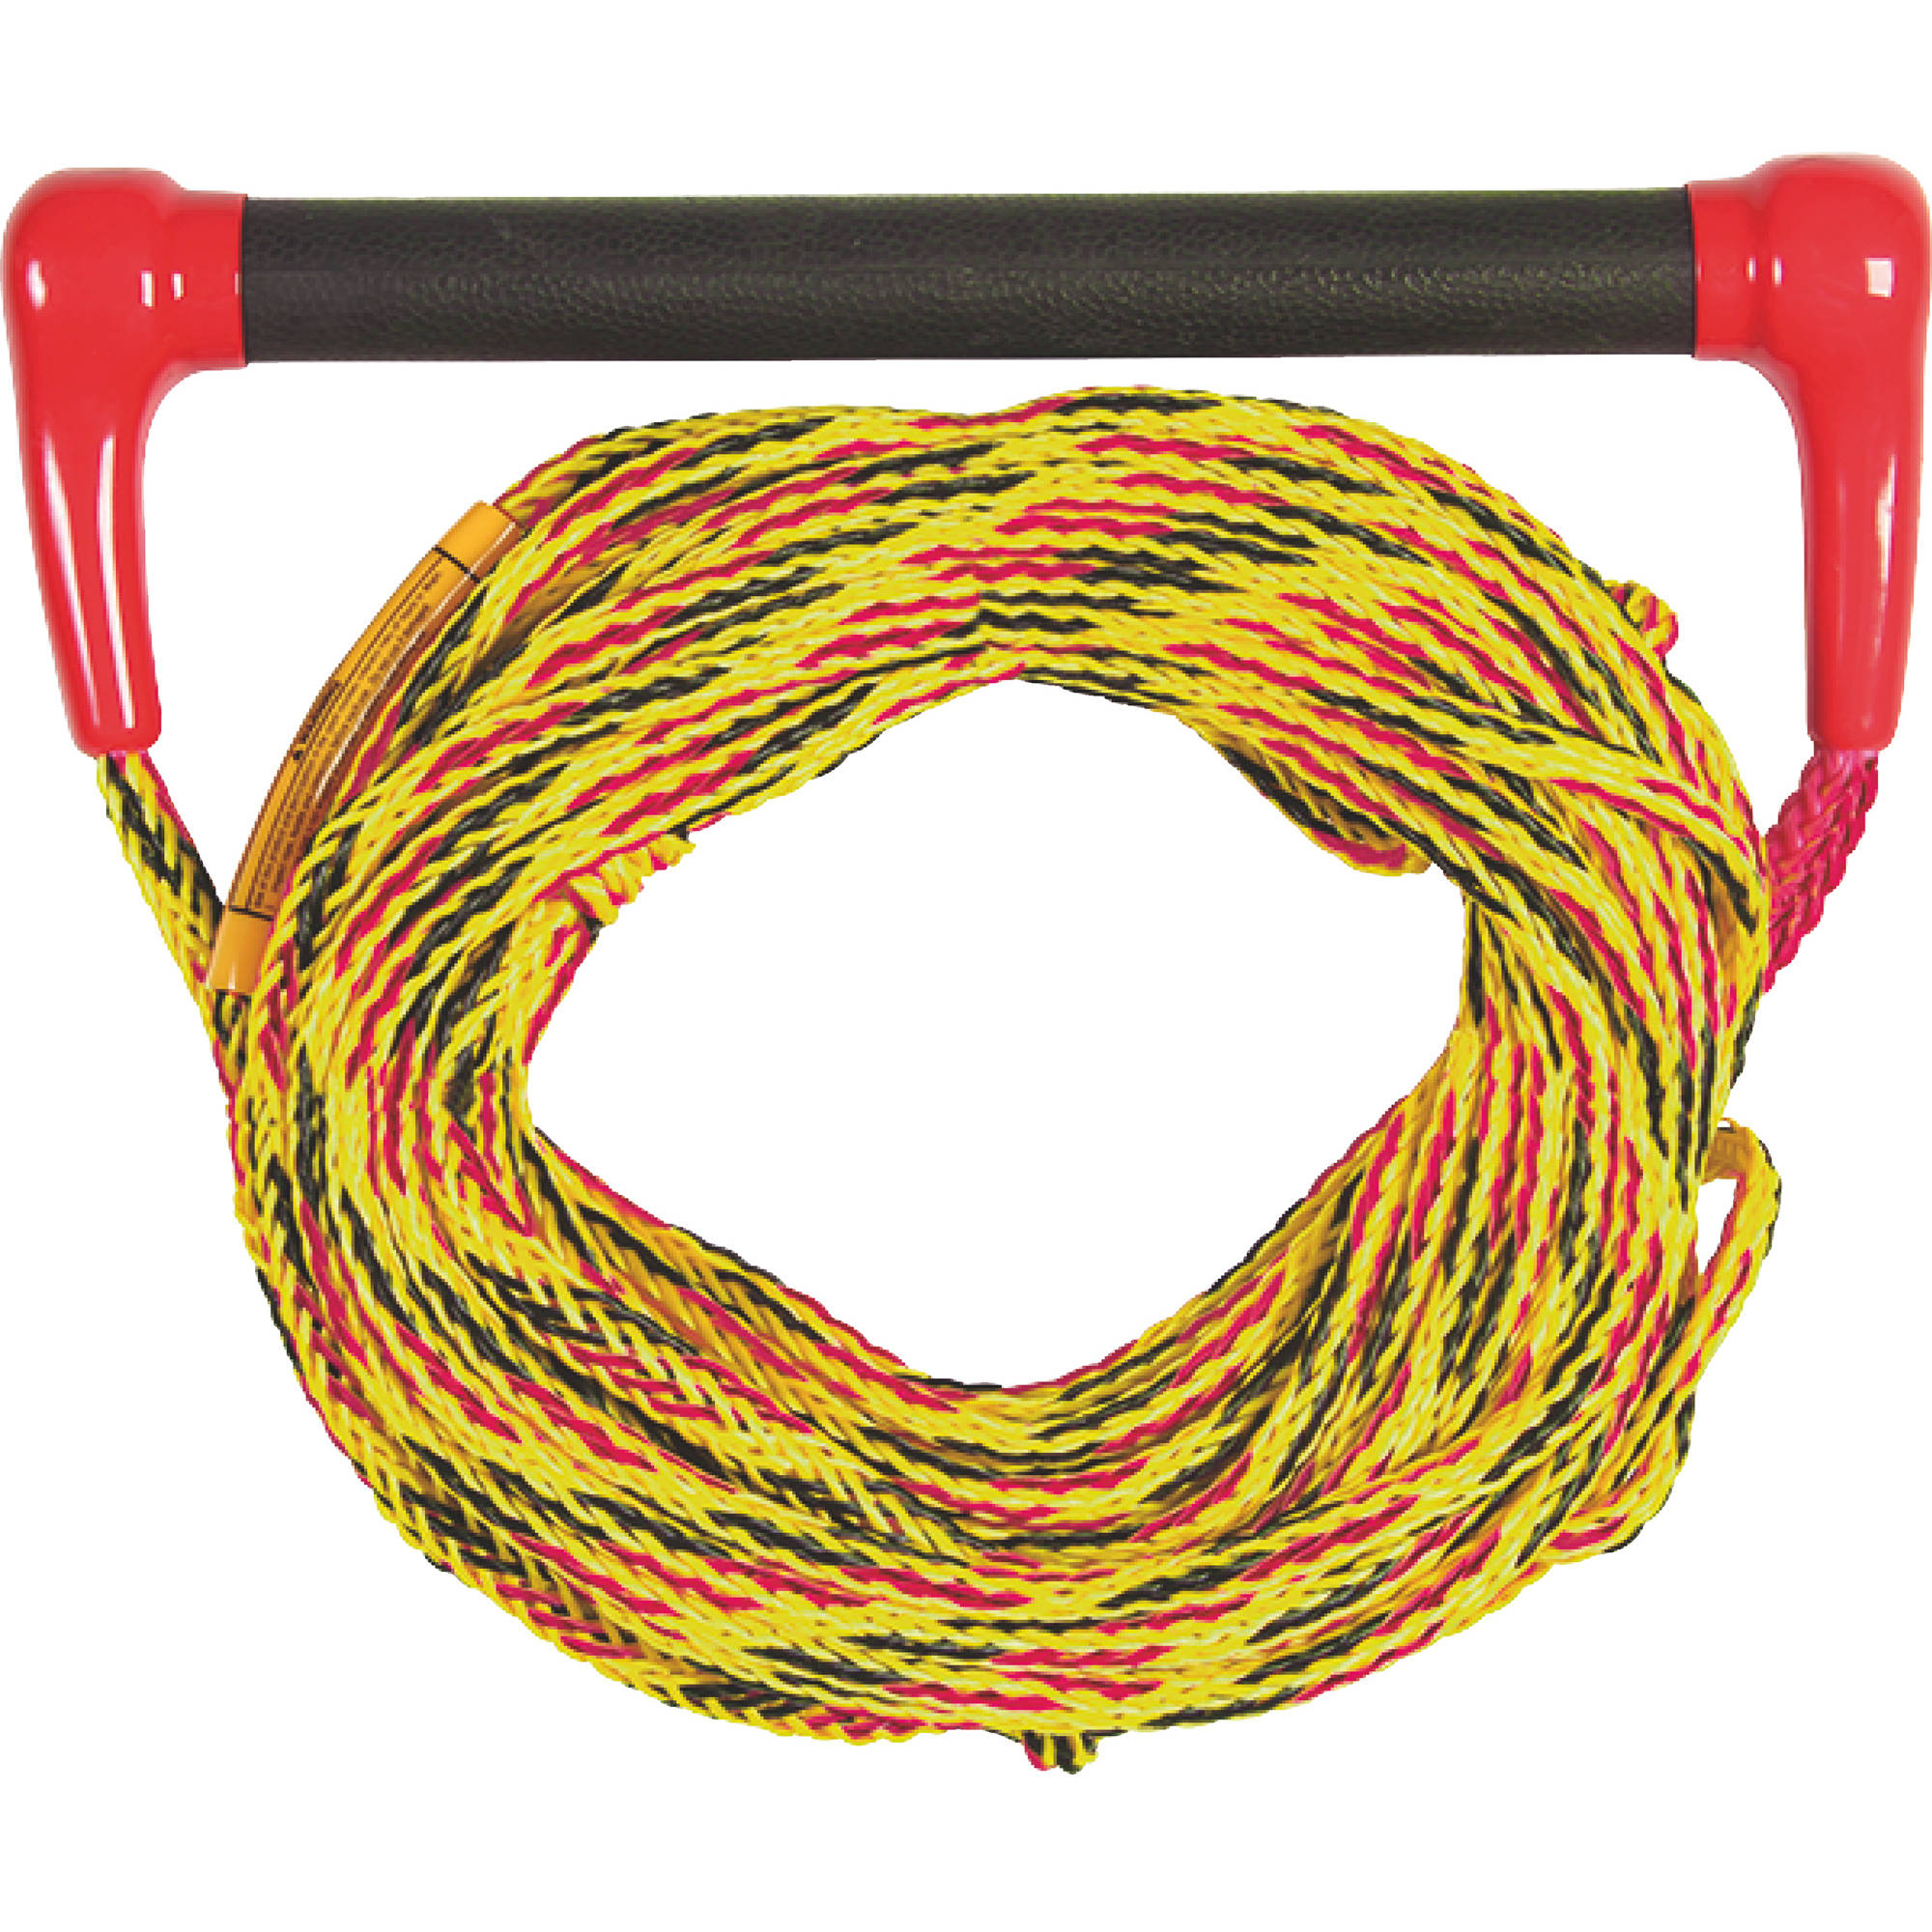 Jobe 211217004 Red Ski Combo 60' Rubber Grip Transfer Rope by Jobe Sport International